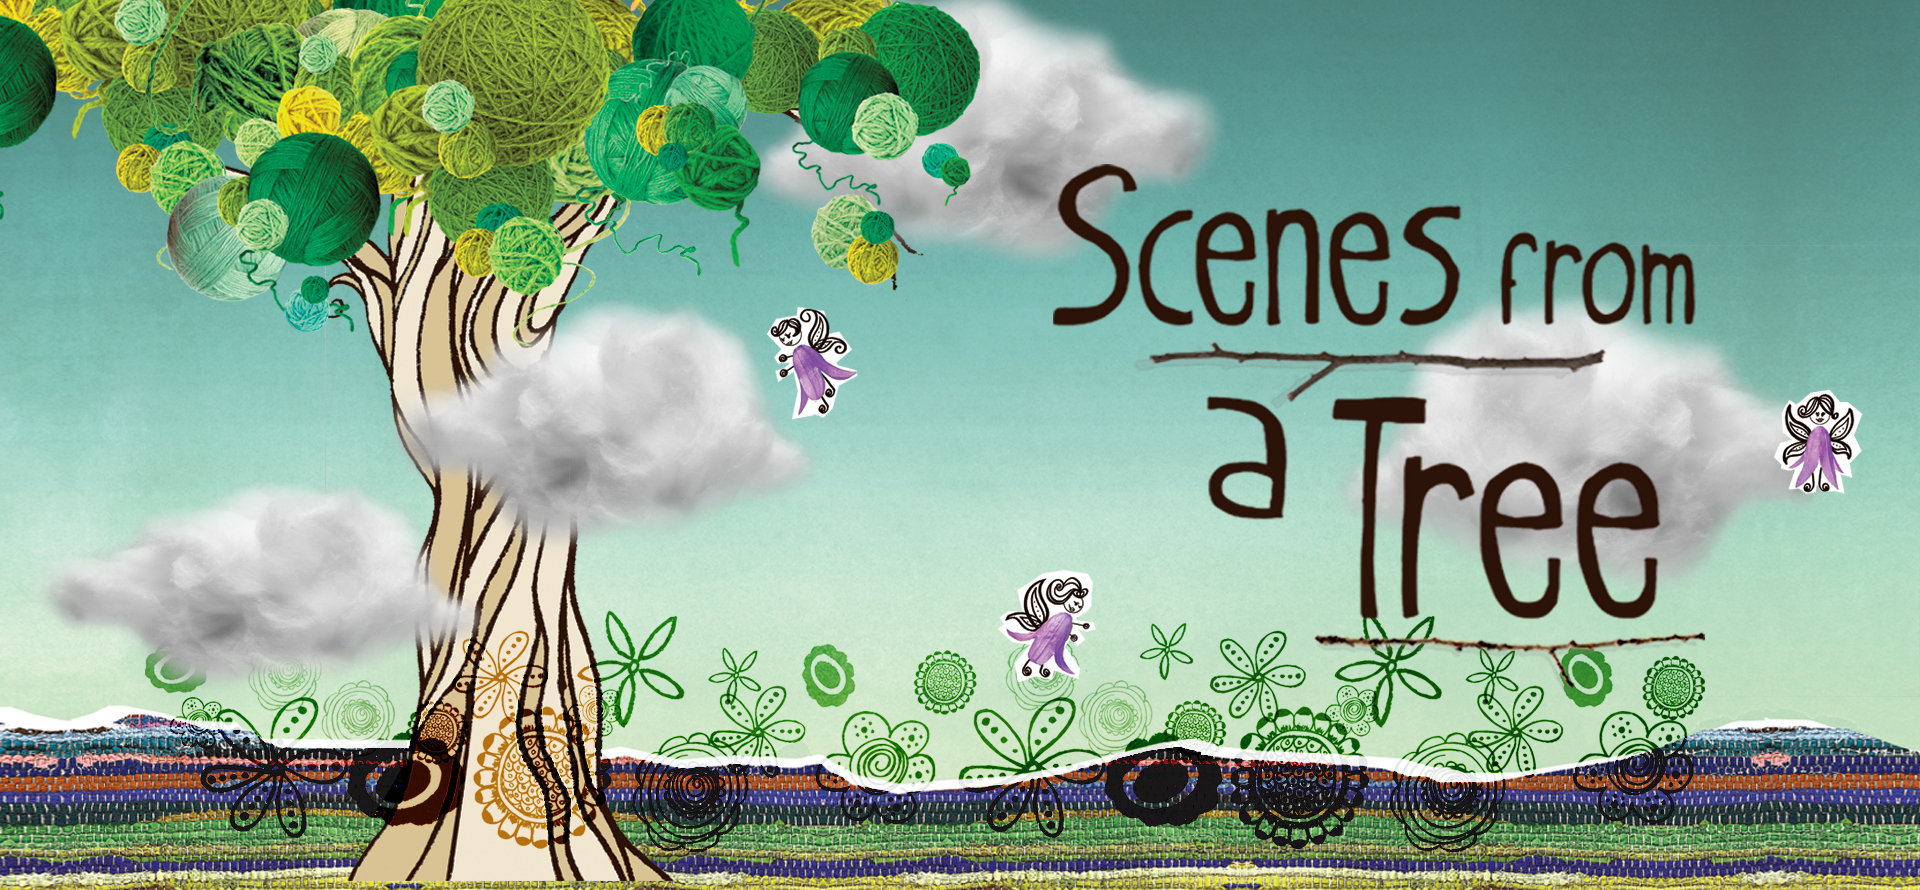 Scenes From a Tree